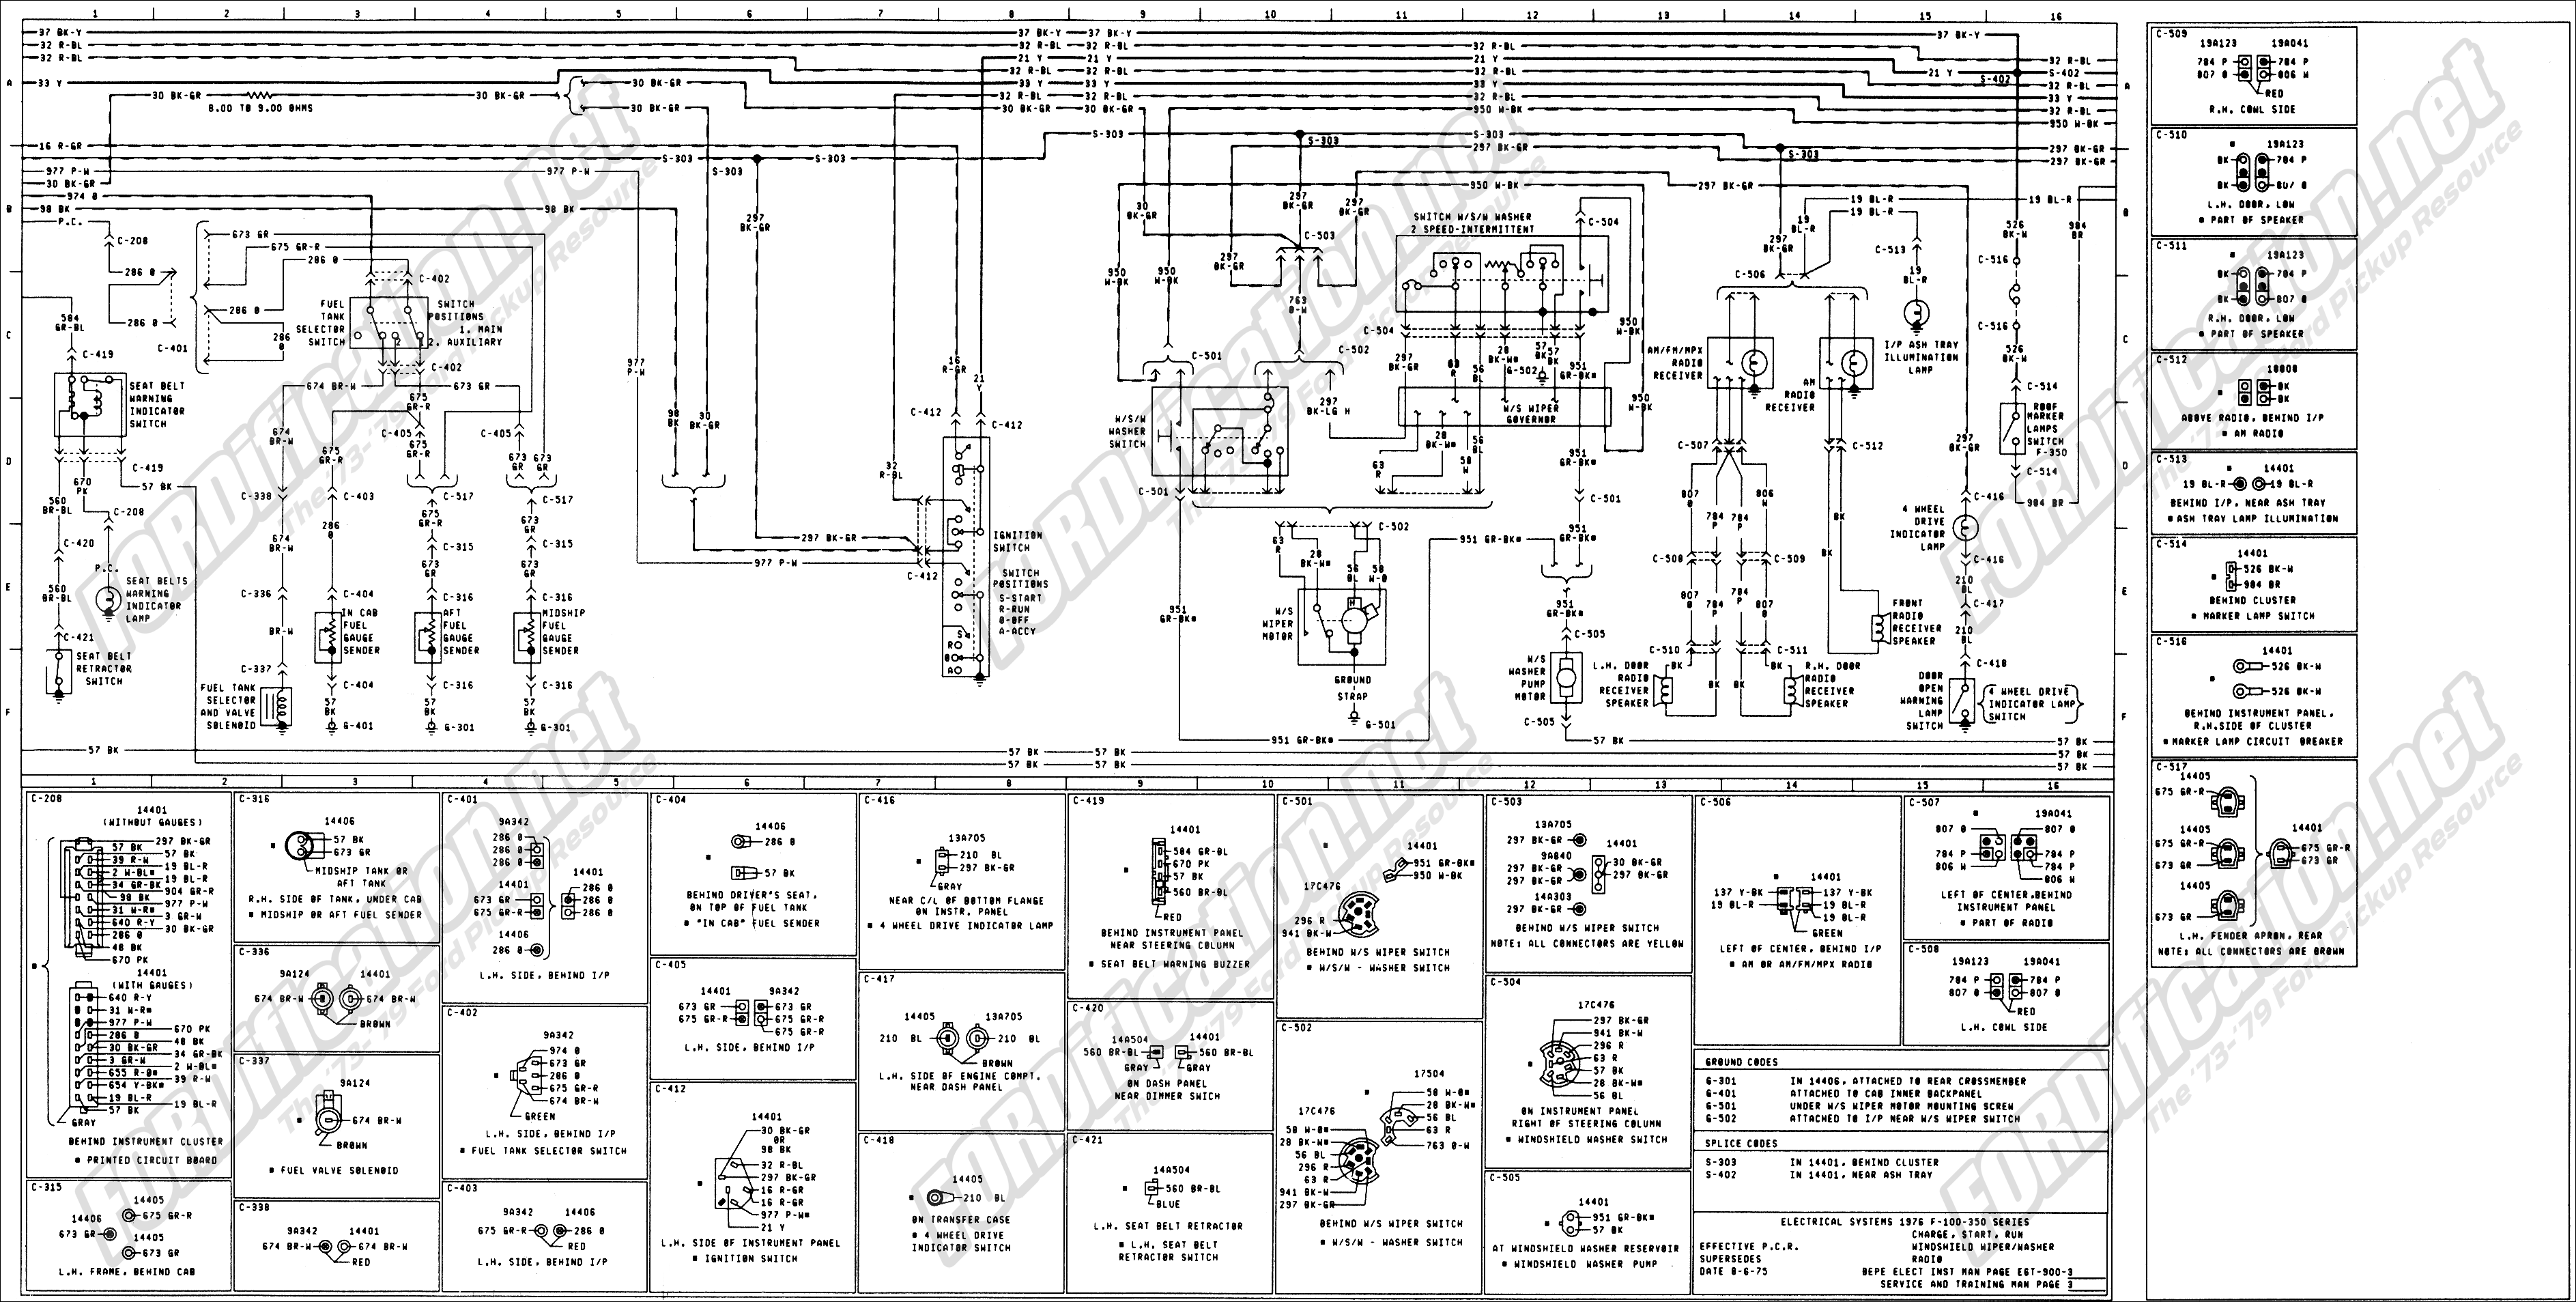 wiring_76master_3of9 1994 ford super duty wiring diagram wiring diagram simonand ford wiring schematics at readyjetset.co